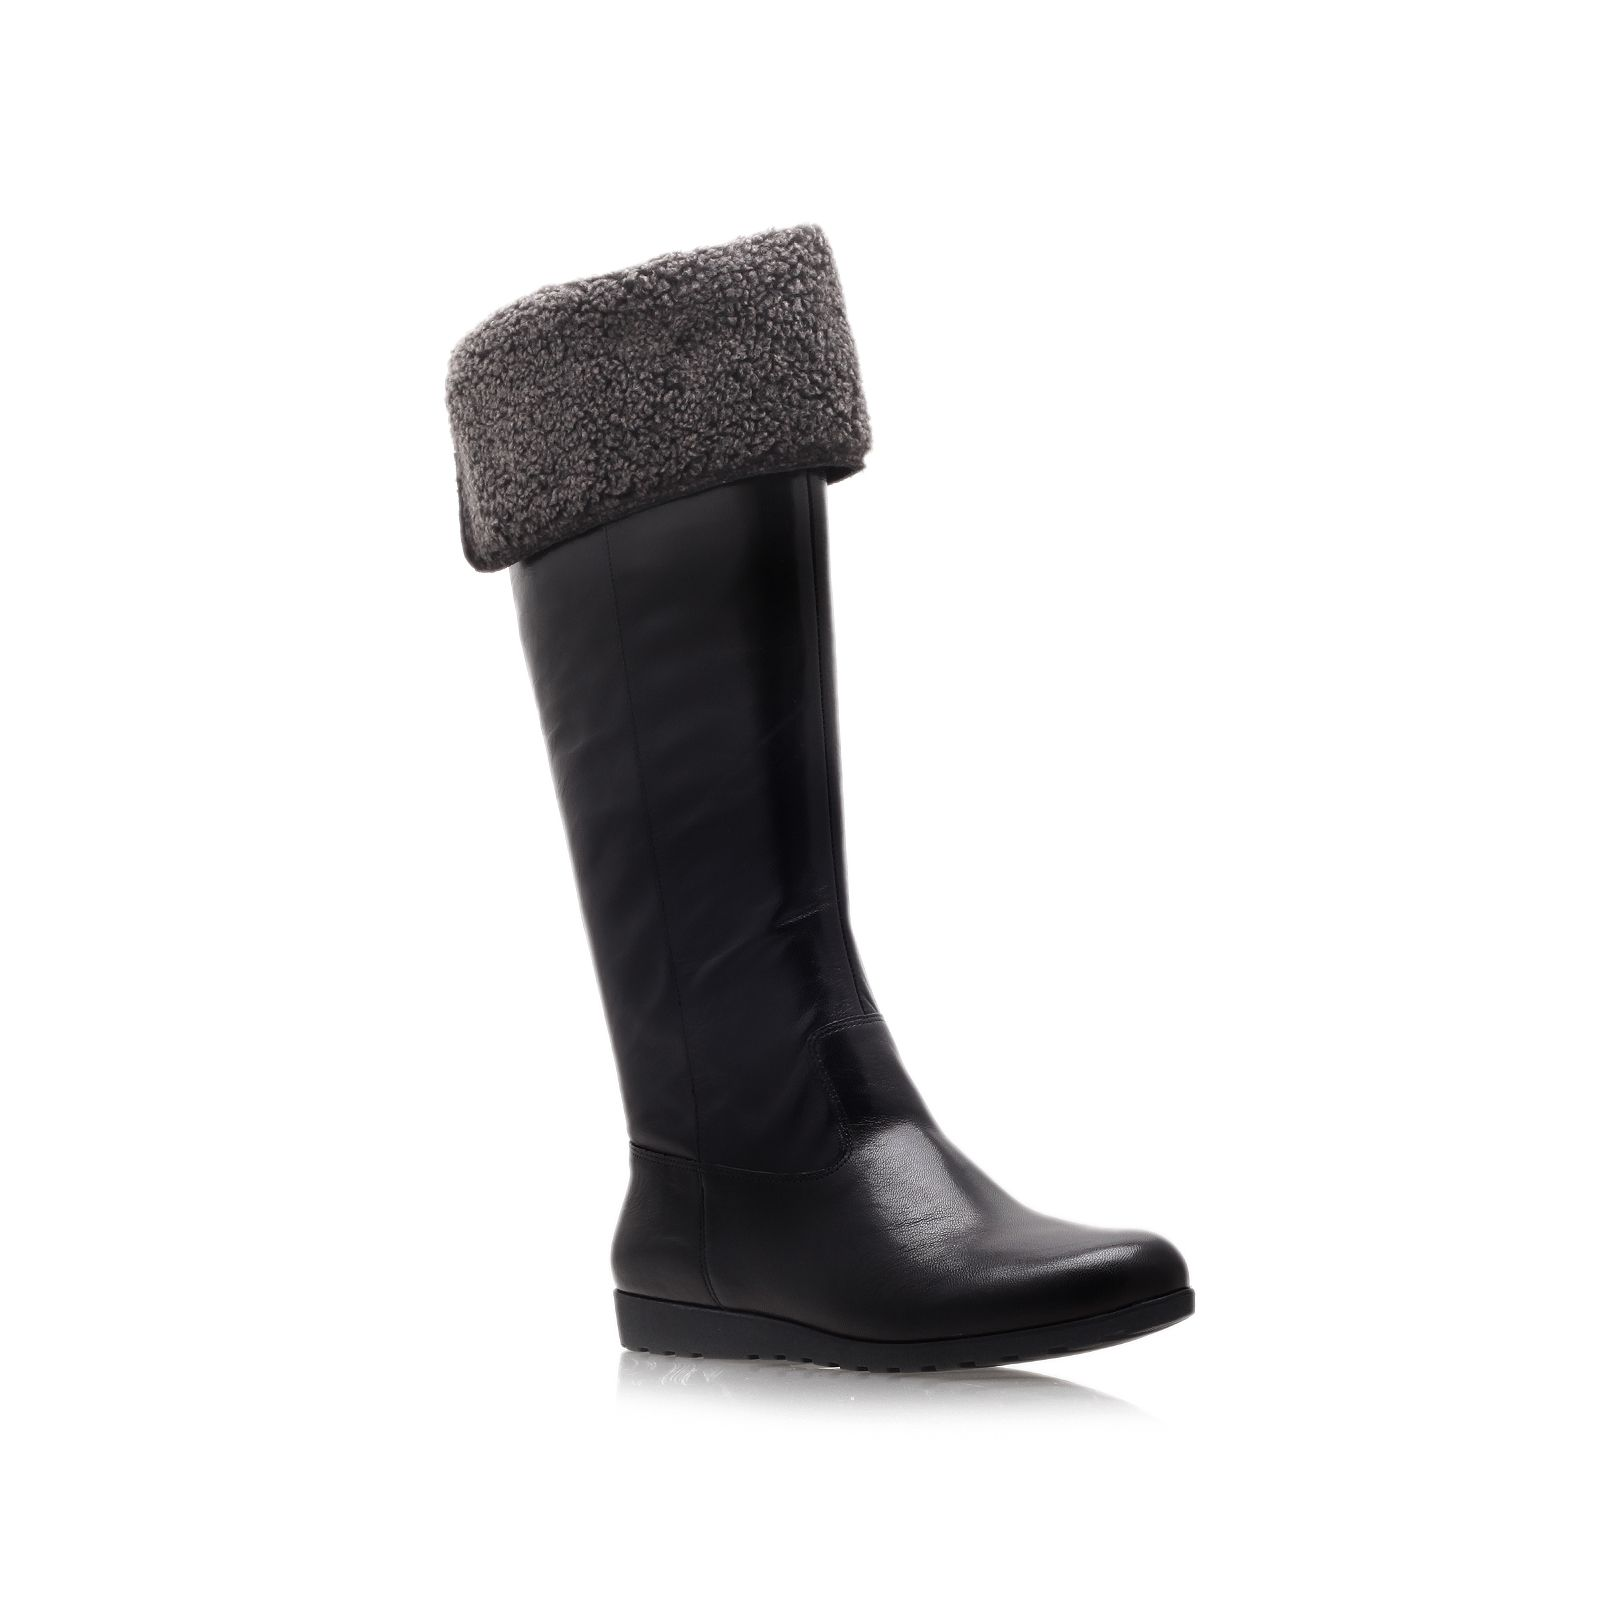 Diyella flat knee high boots